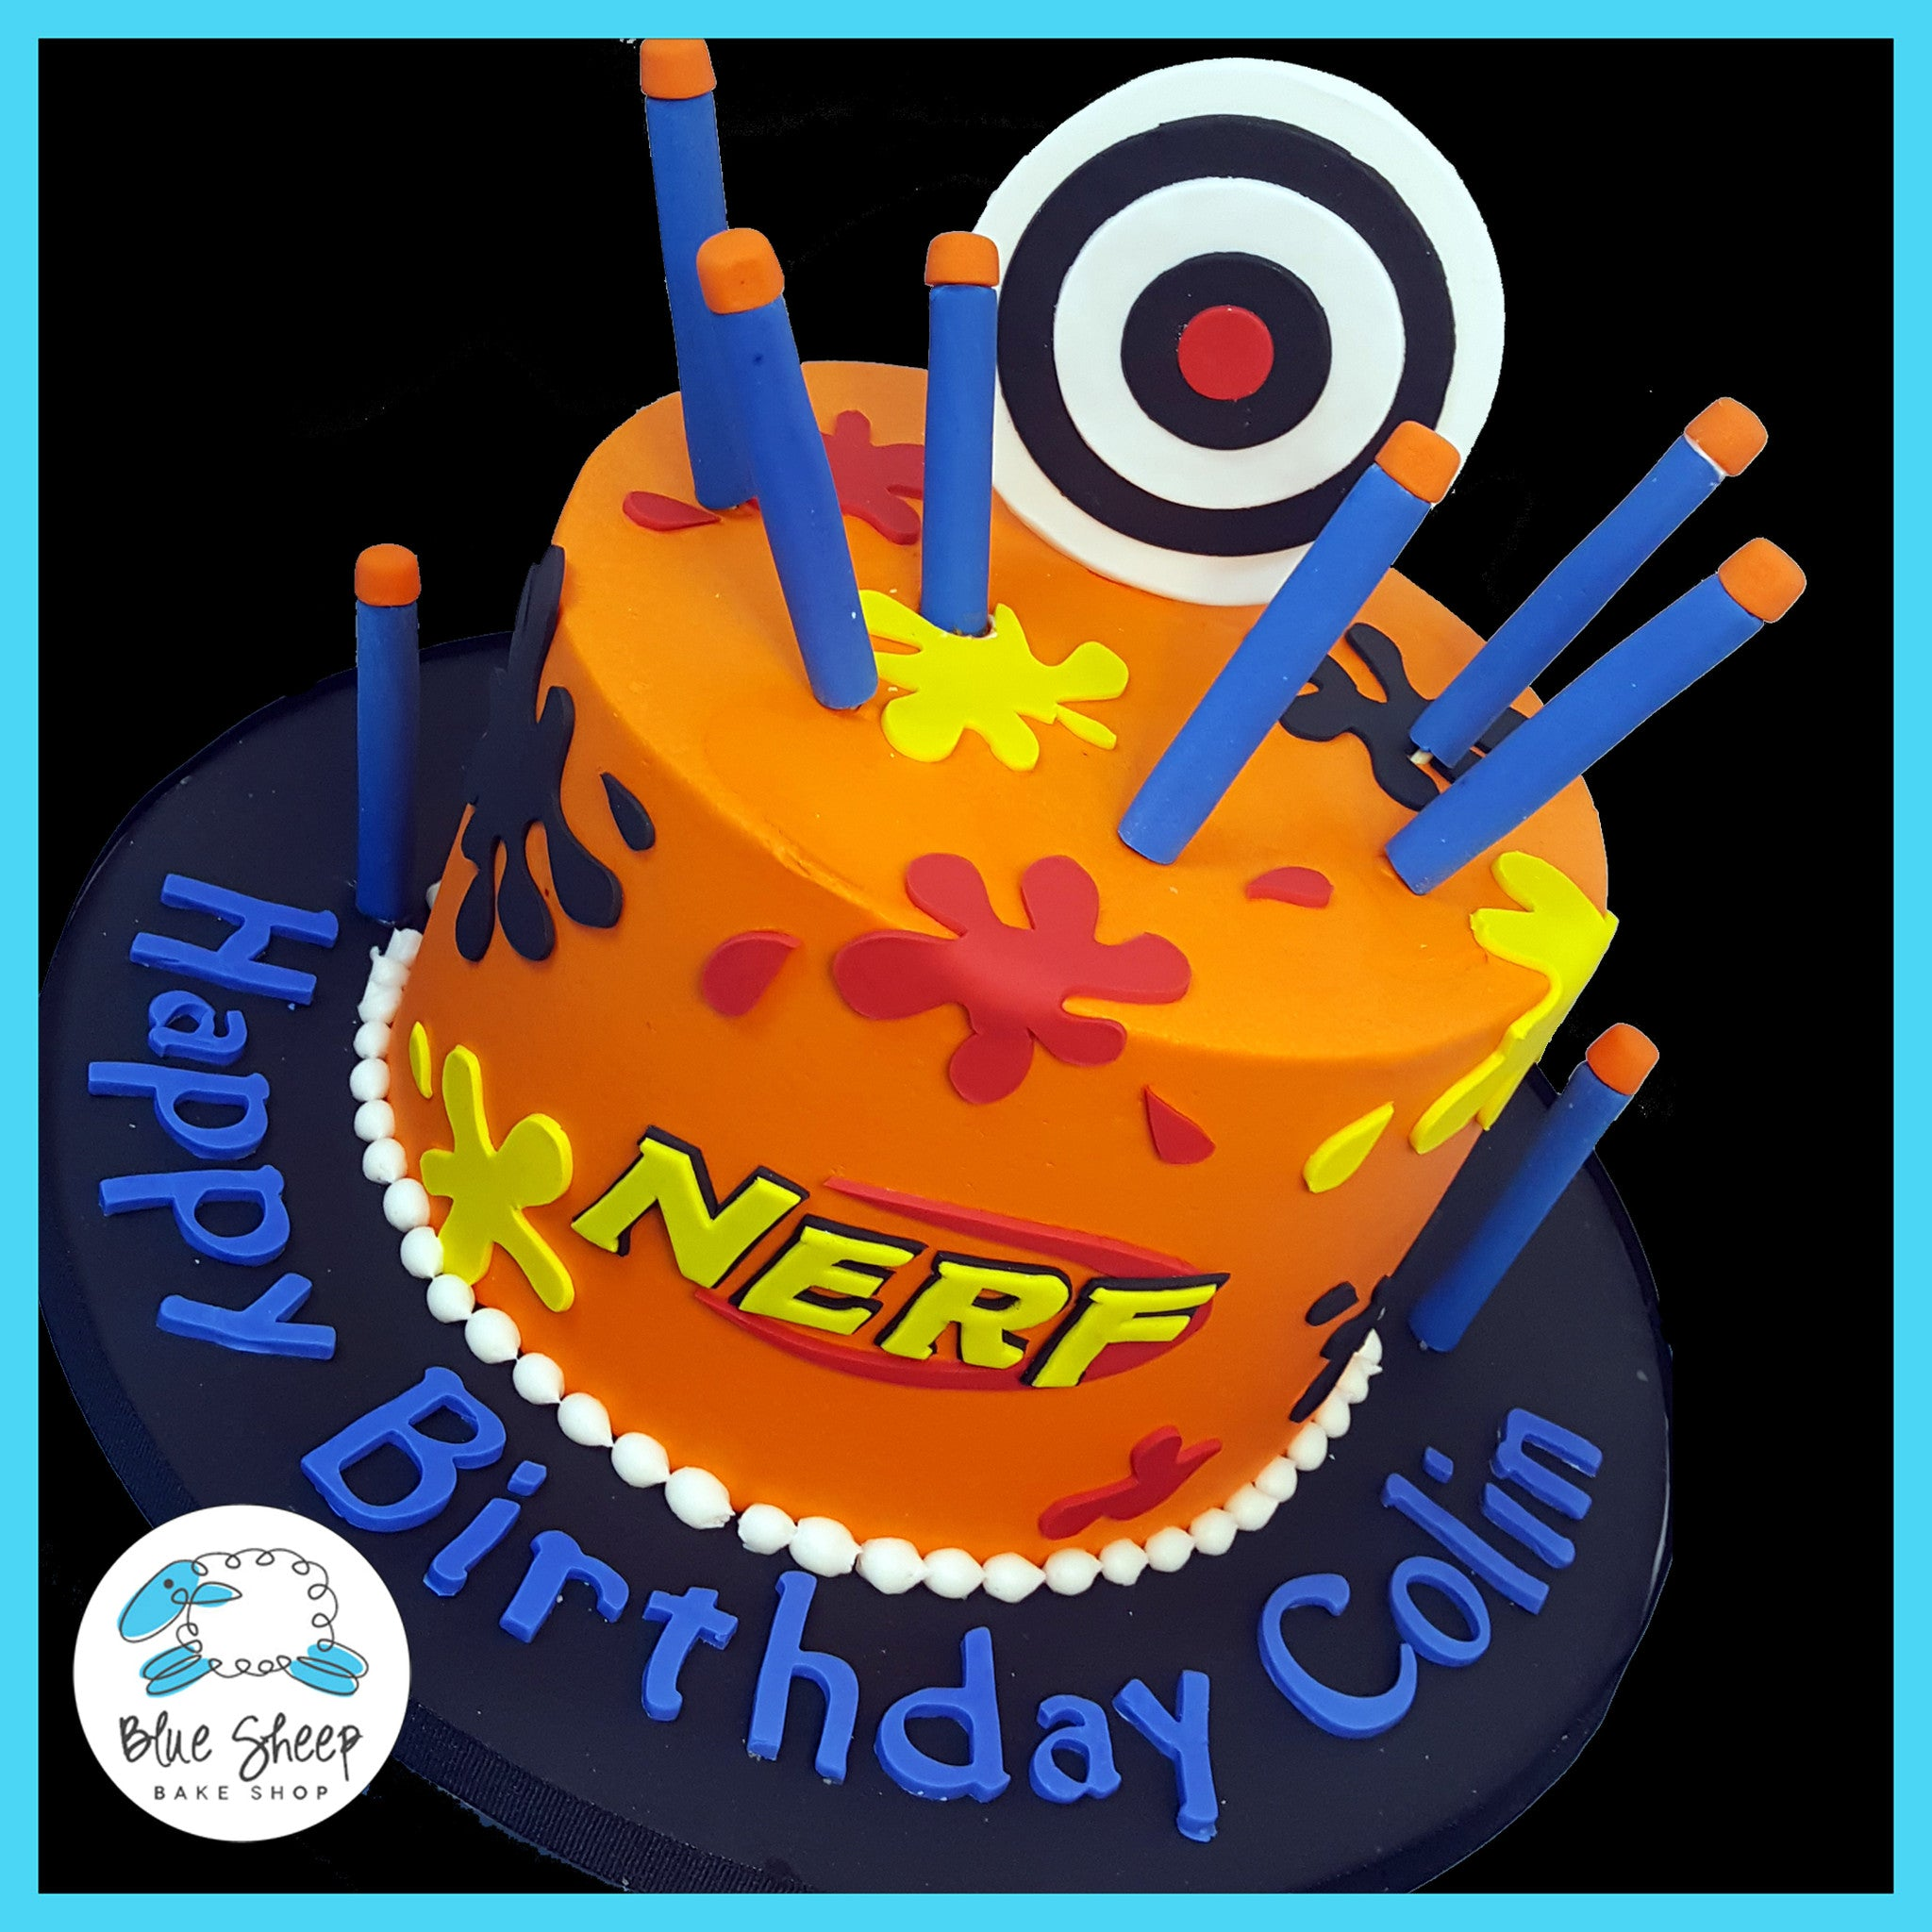 Nerf Birthday Cake Blue Sheep Bake Shop